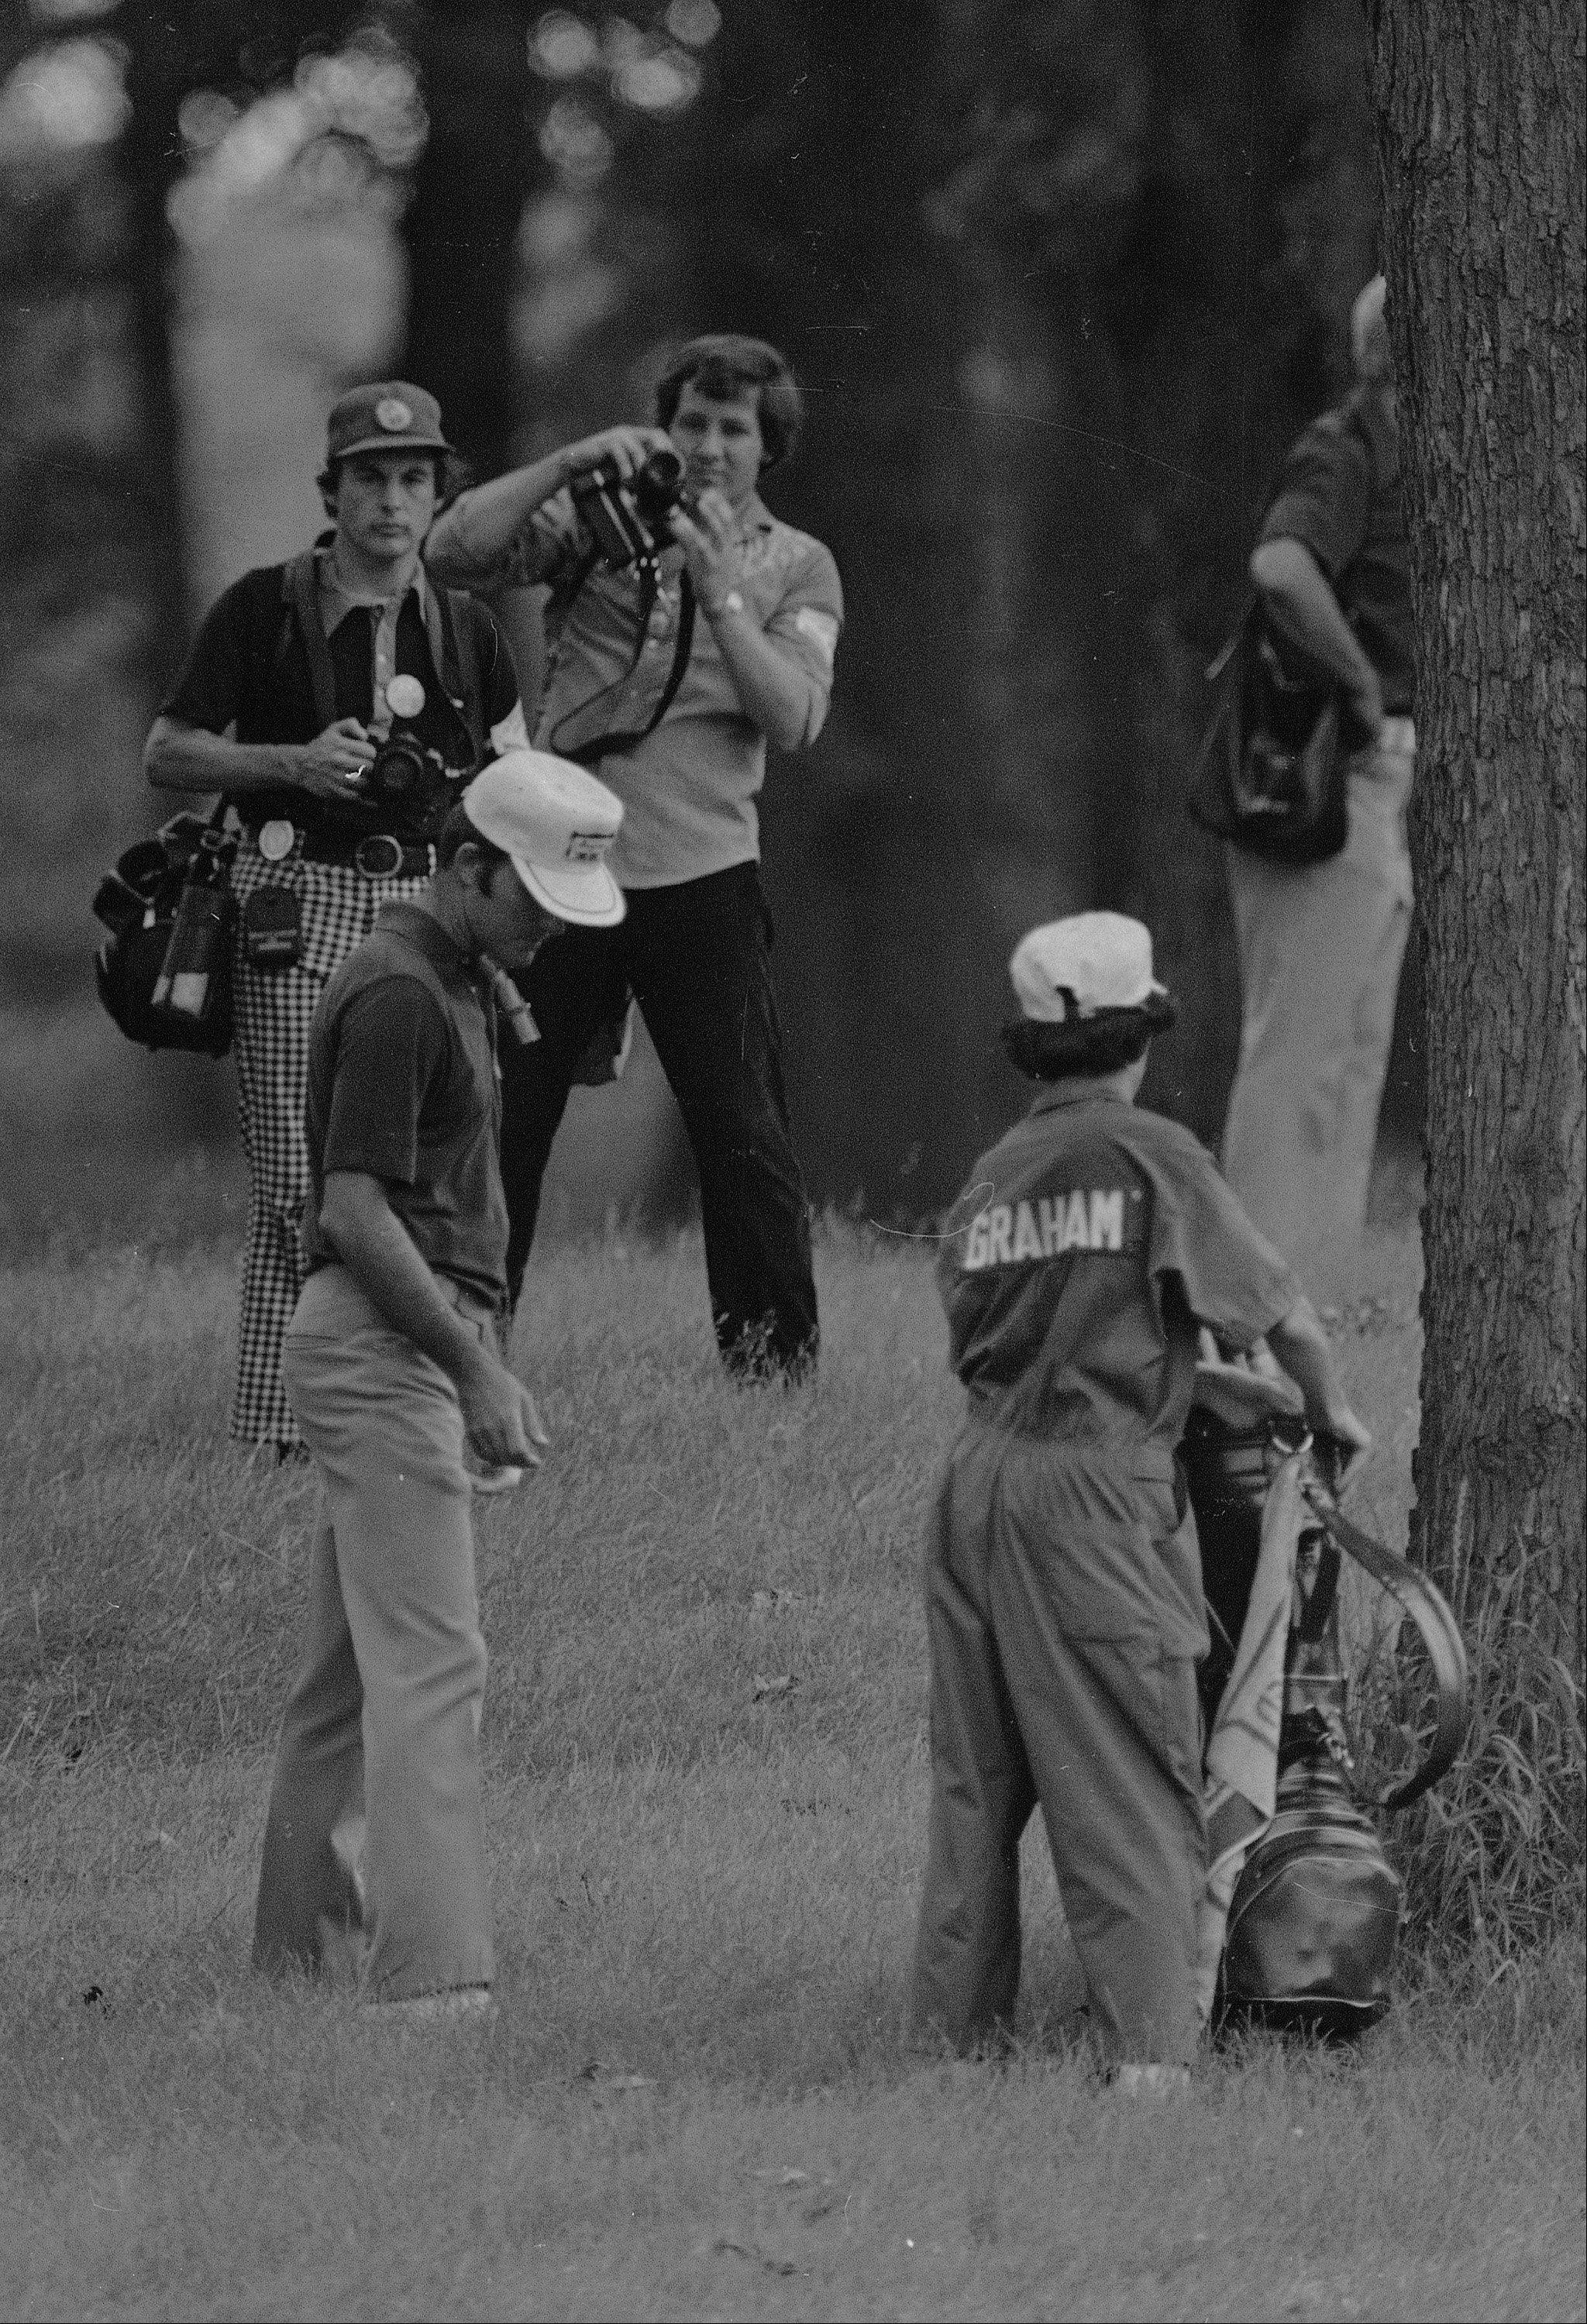 Deep in the rough behind a tree, Lou Graham studies his ball and a way to solve his problem on the 13th fairway of Medinah, June 23, 1975. He punched it out close to the green, pitched up and one putted for his par. He went on to win the U.S. Open championship over John Mahaffey, Jr., by two strokes.